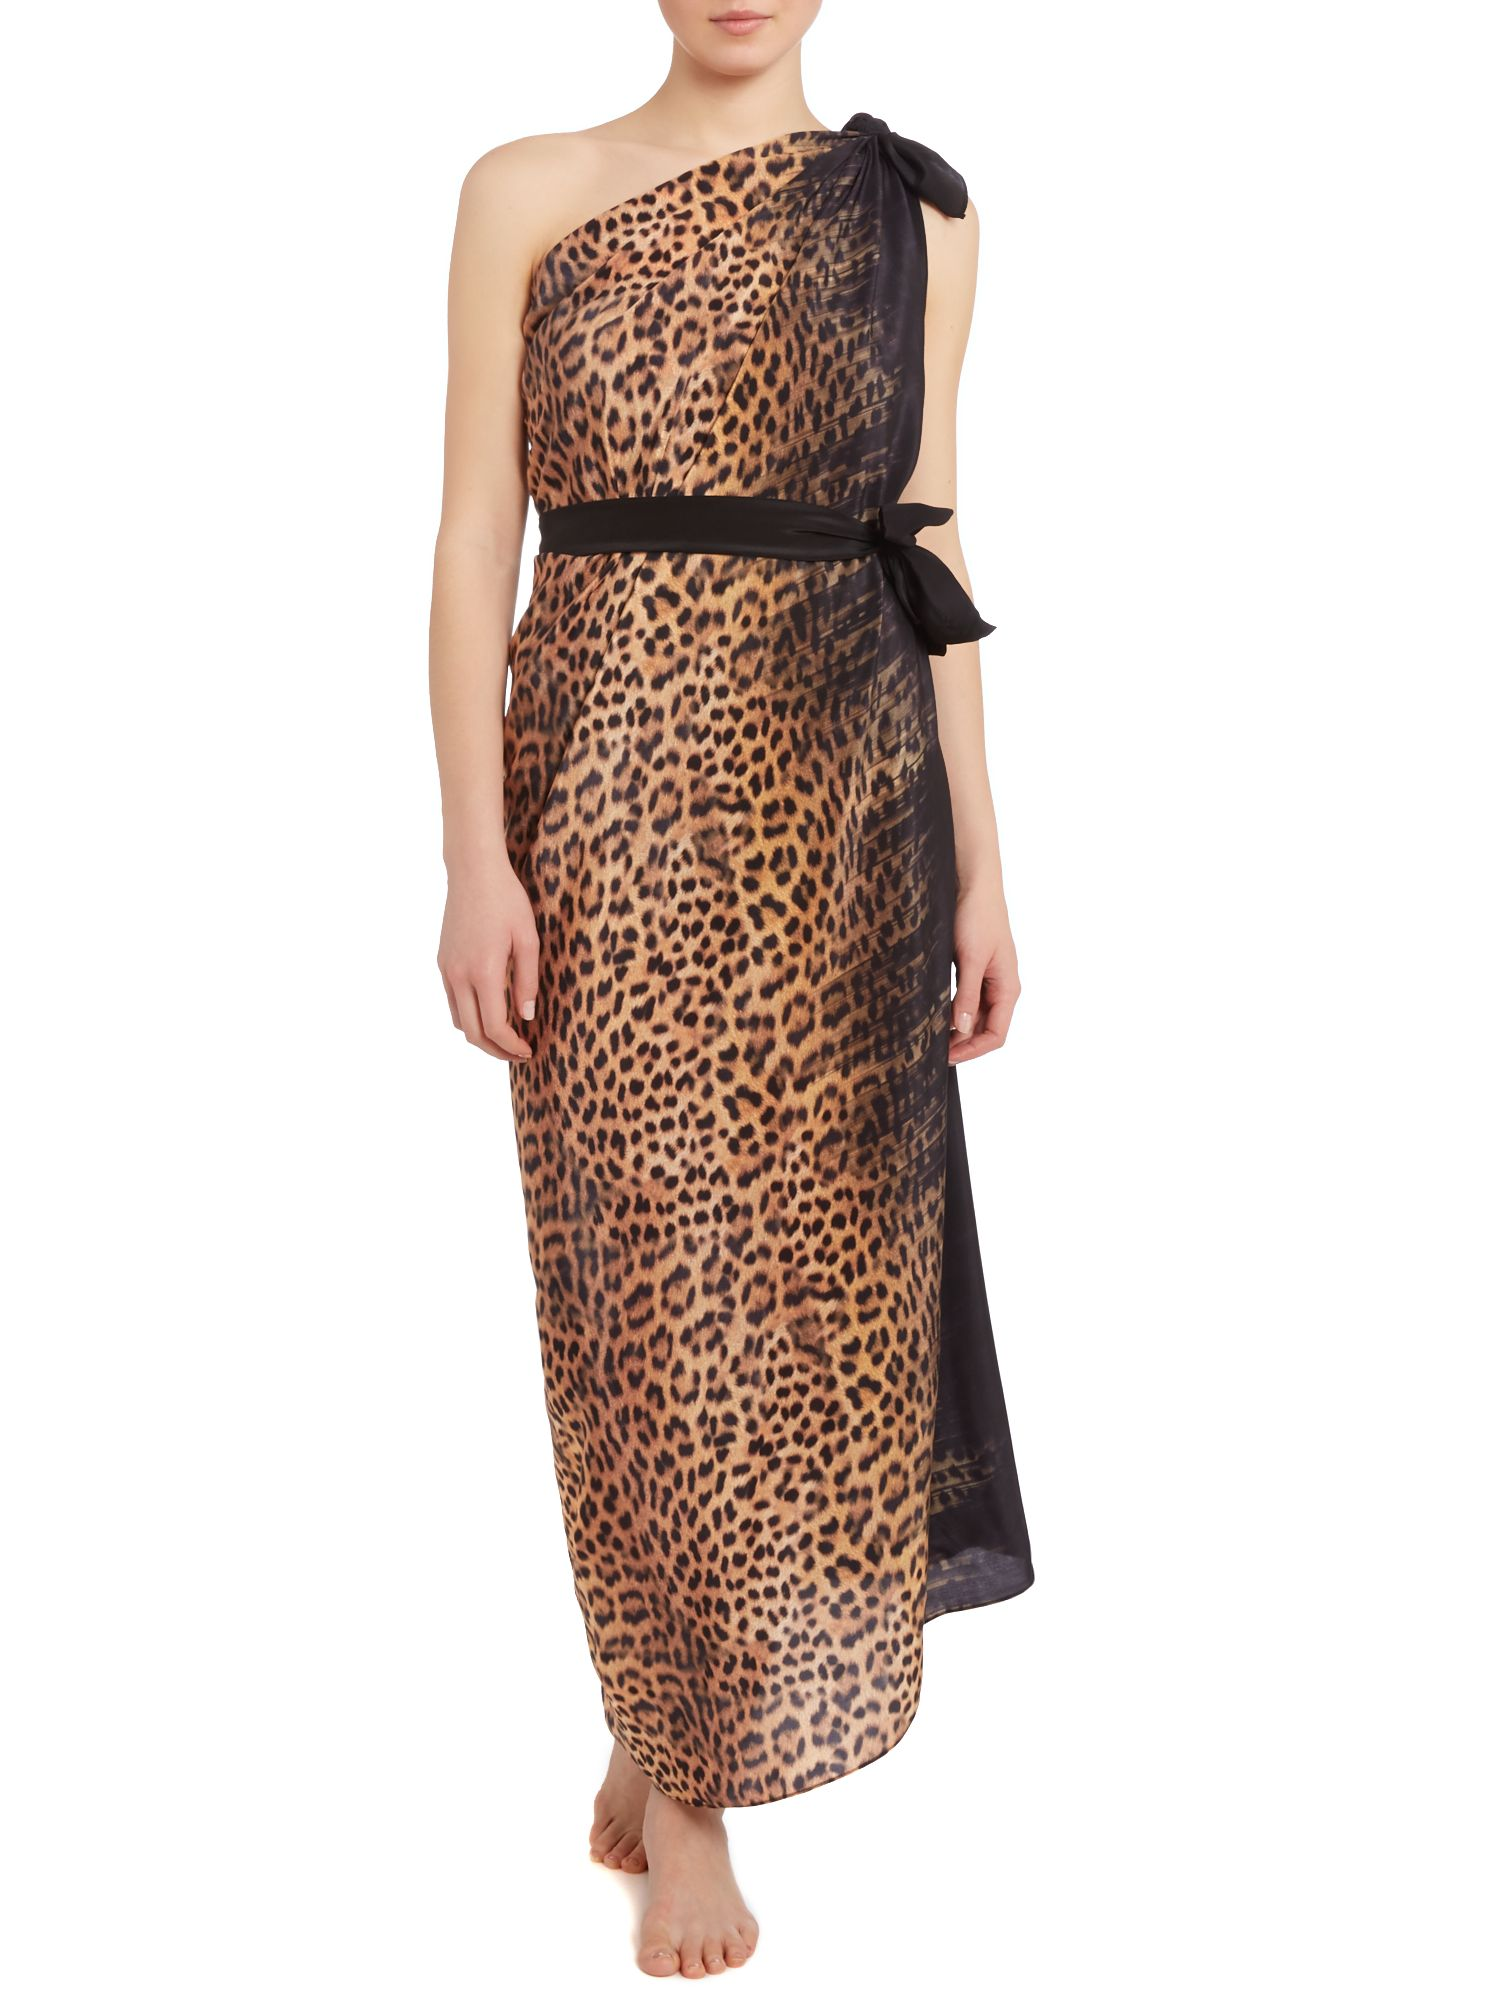 Bangalore leopard print pareo with belt